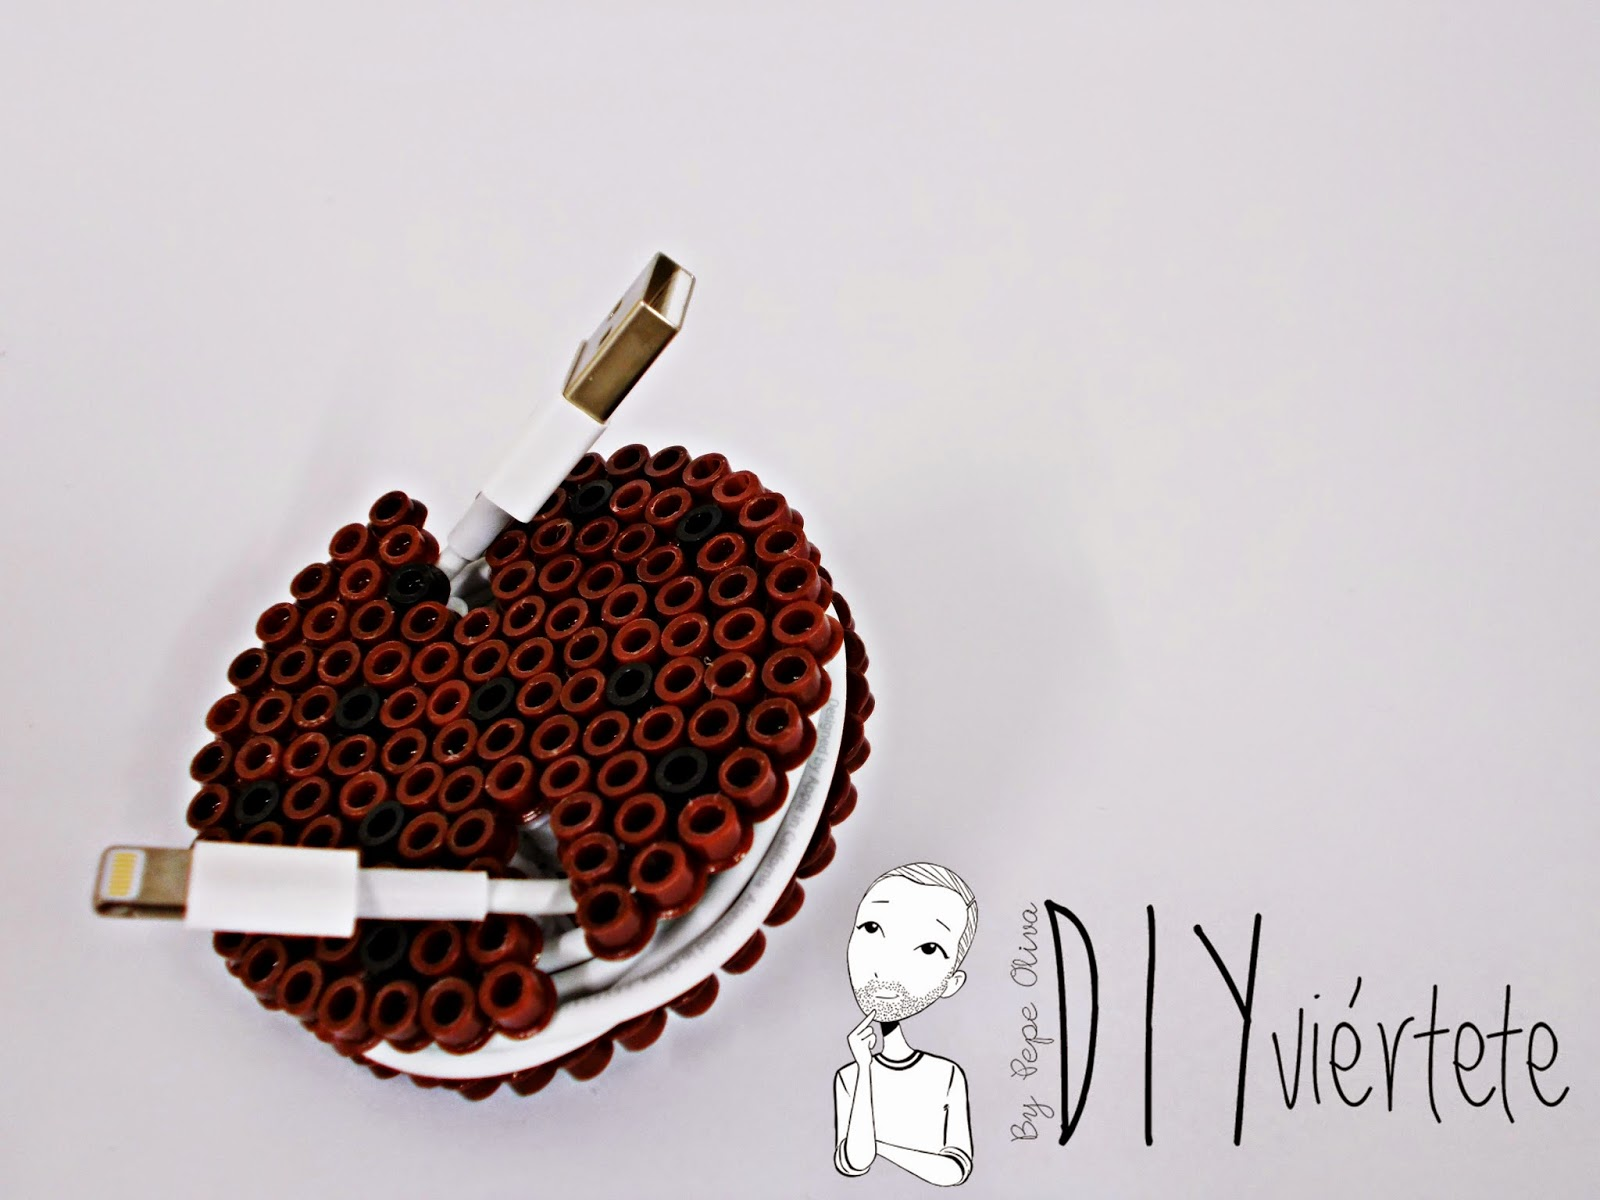 DIY-Hama Beads-ideas-galleta-cookie-guarda auriculares-cables-organizador-1